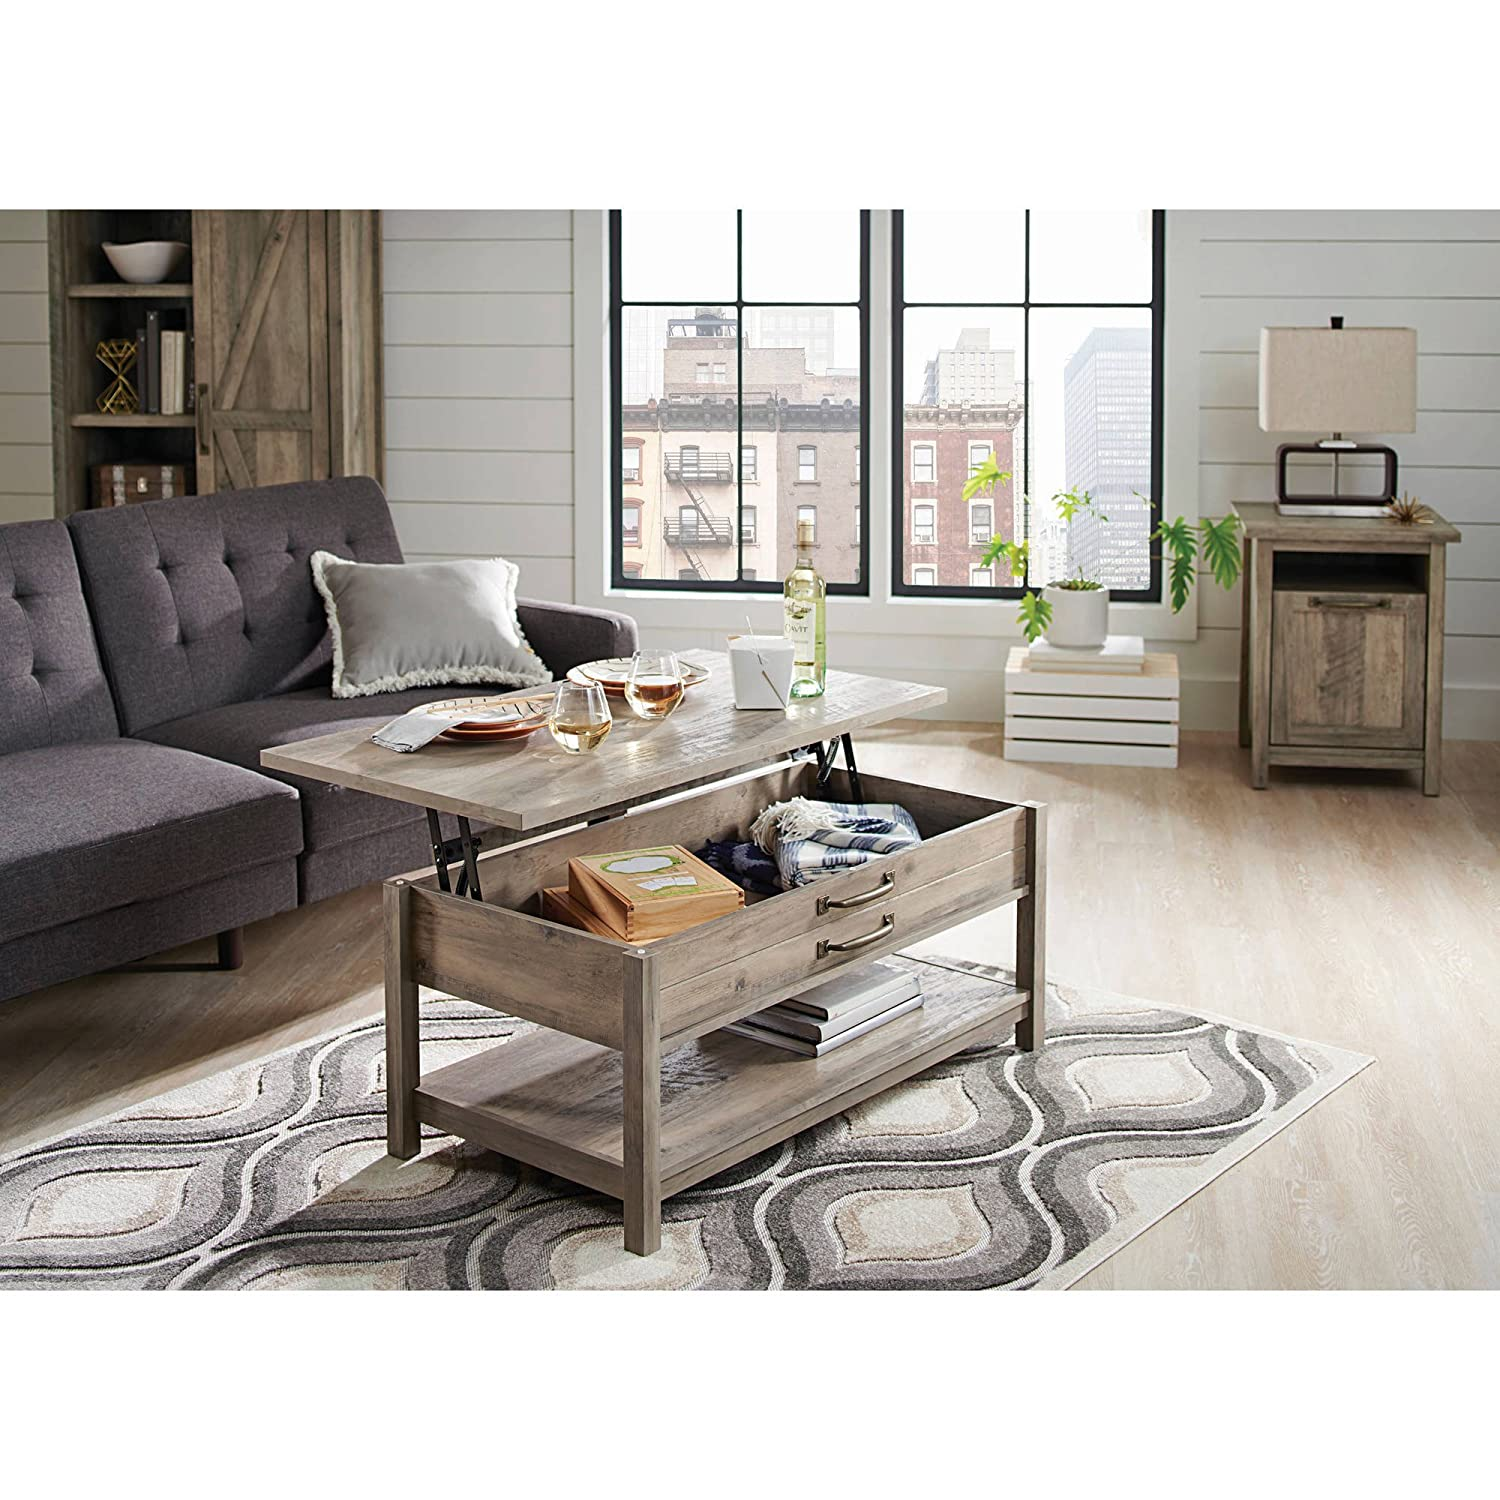 Amazon com better homes and gardens modern farmhouse top lifts up and forward coffee table rustic gray finish kitchen dining